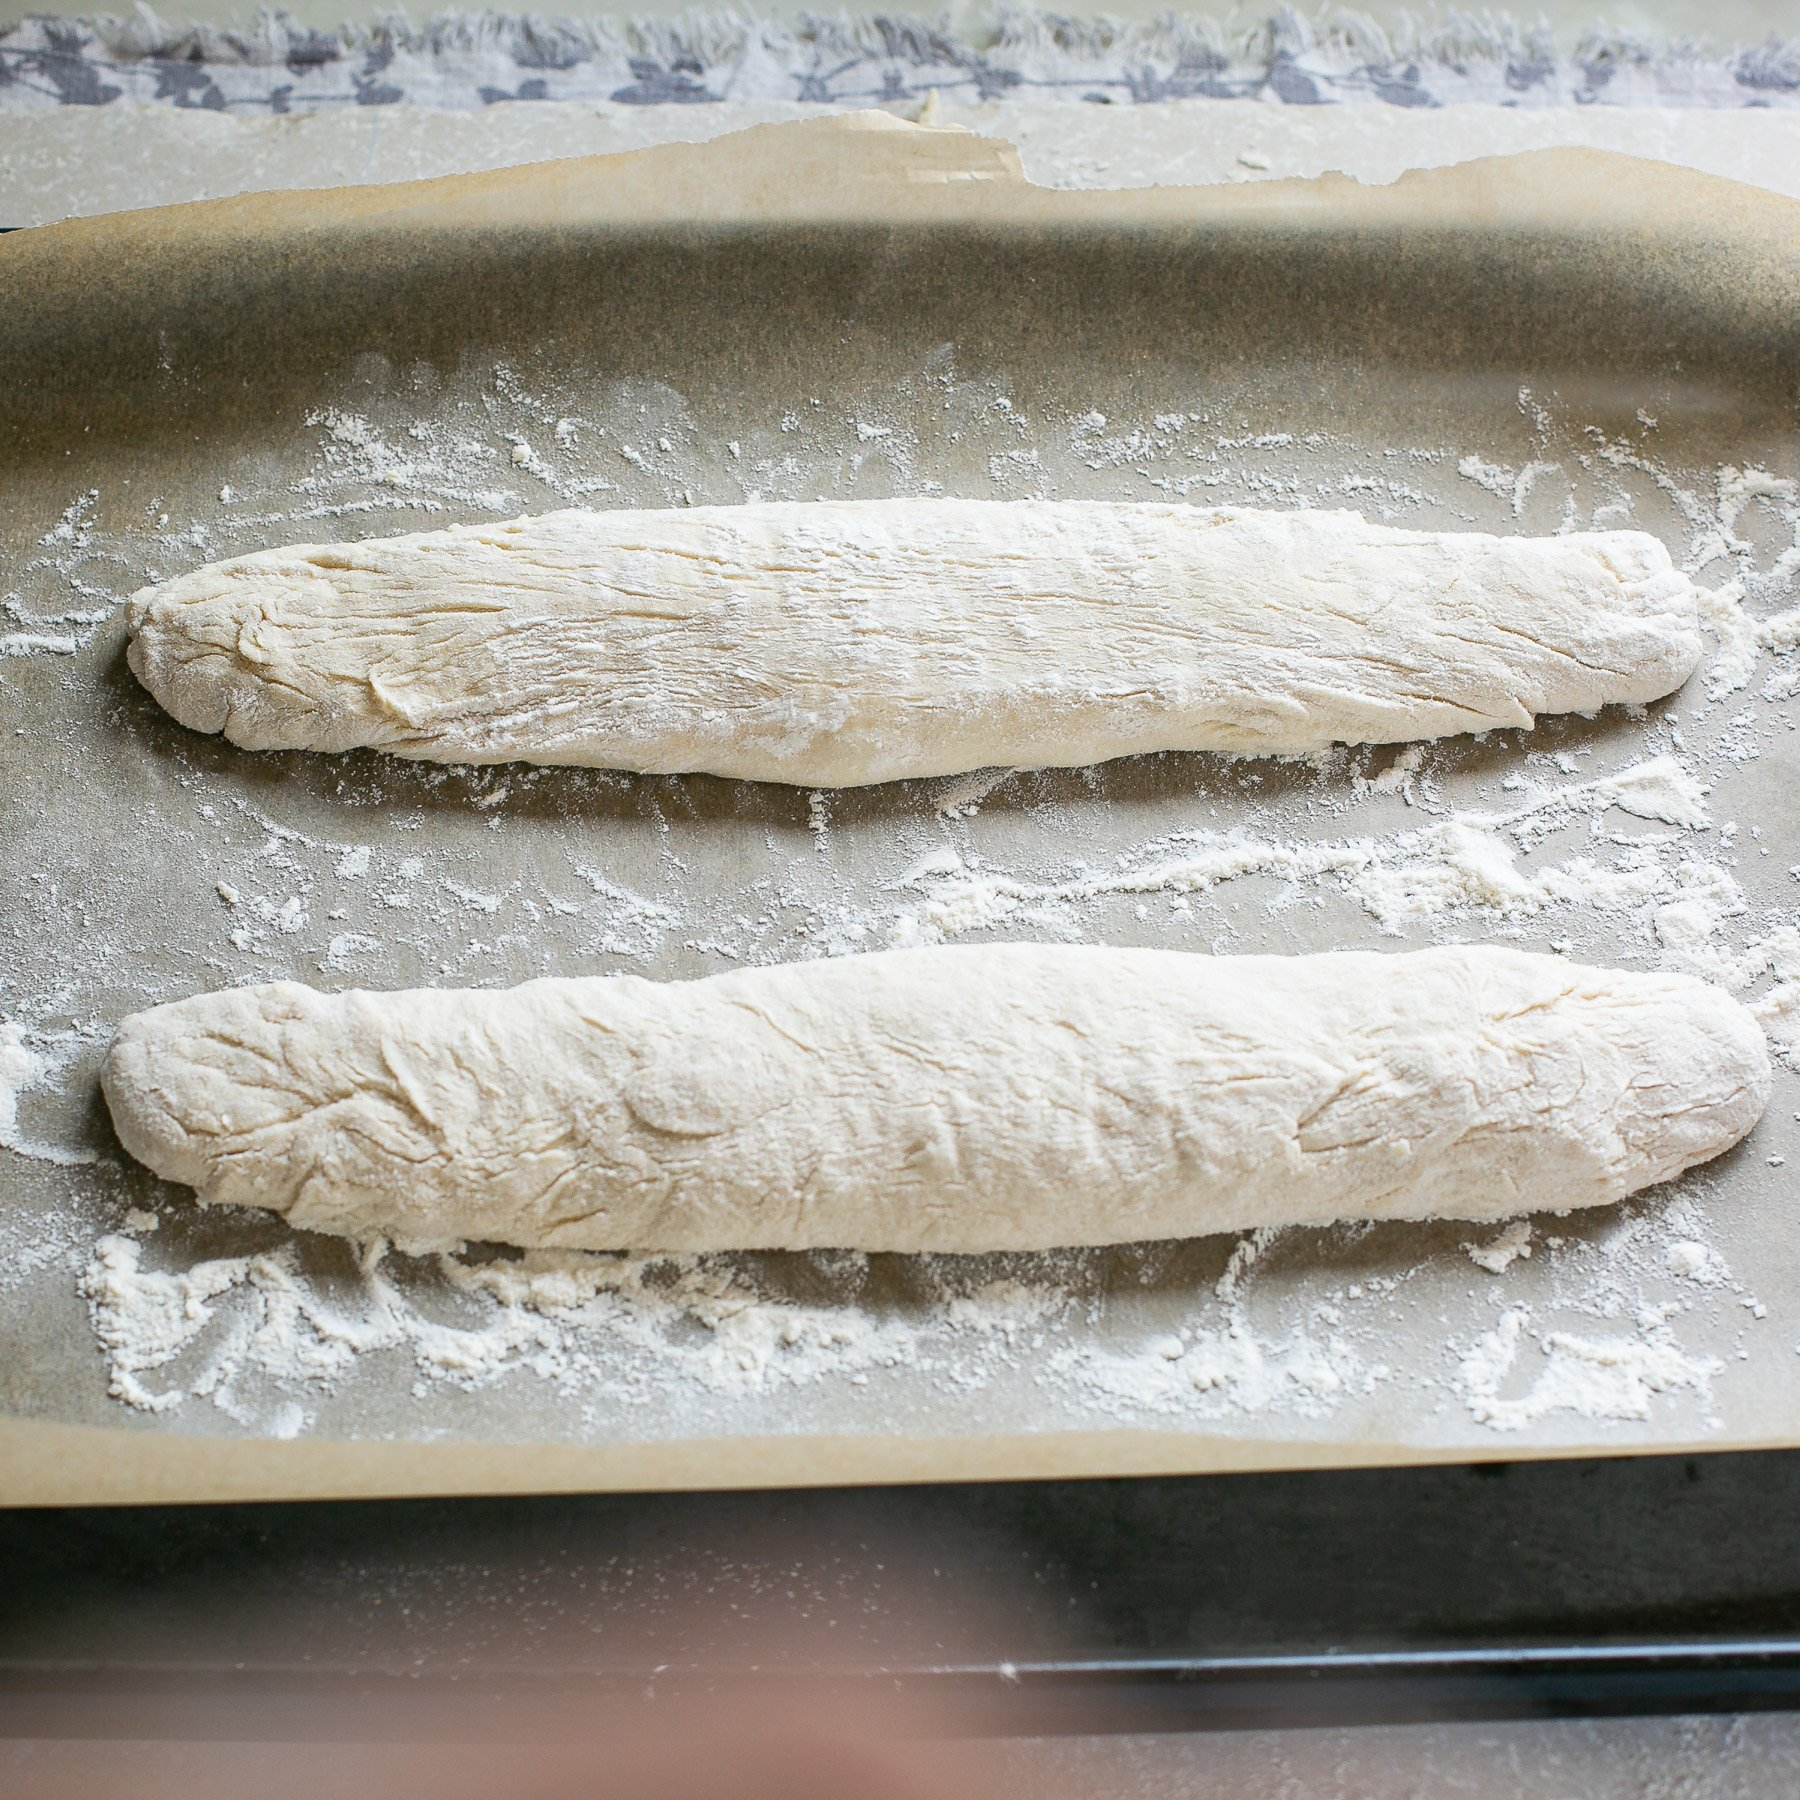 French baguettes ready to bake